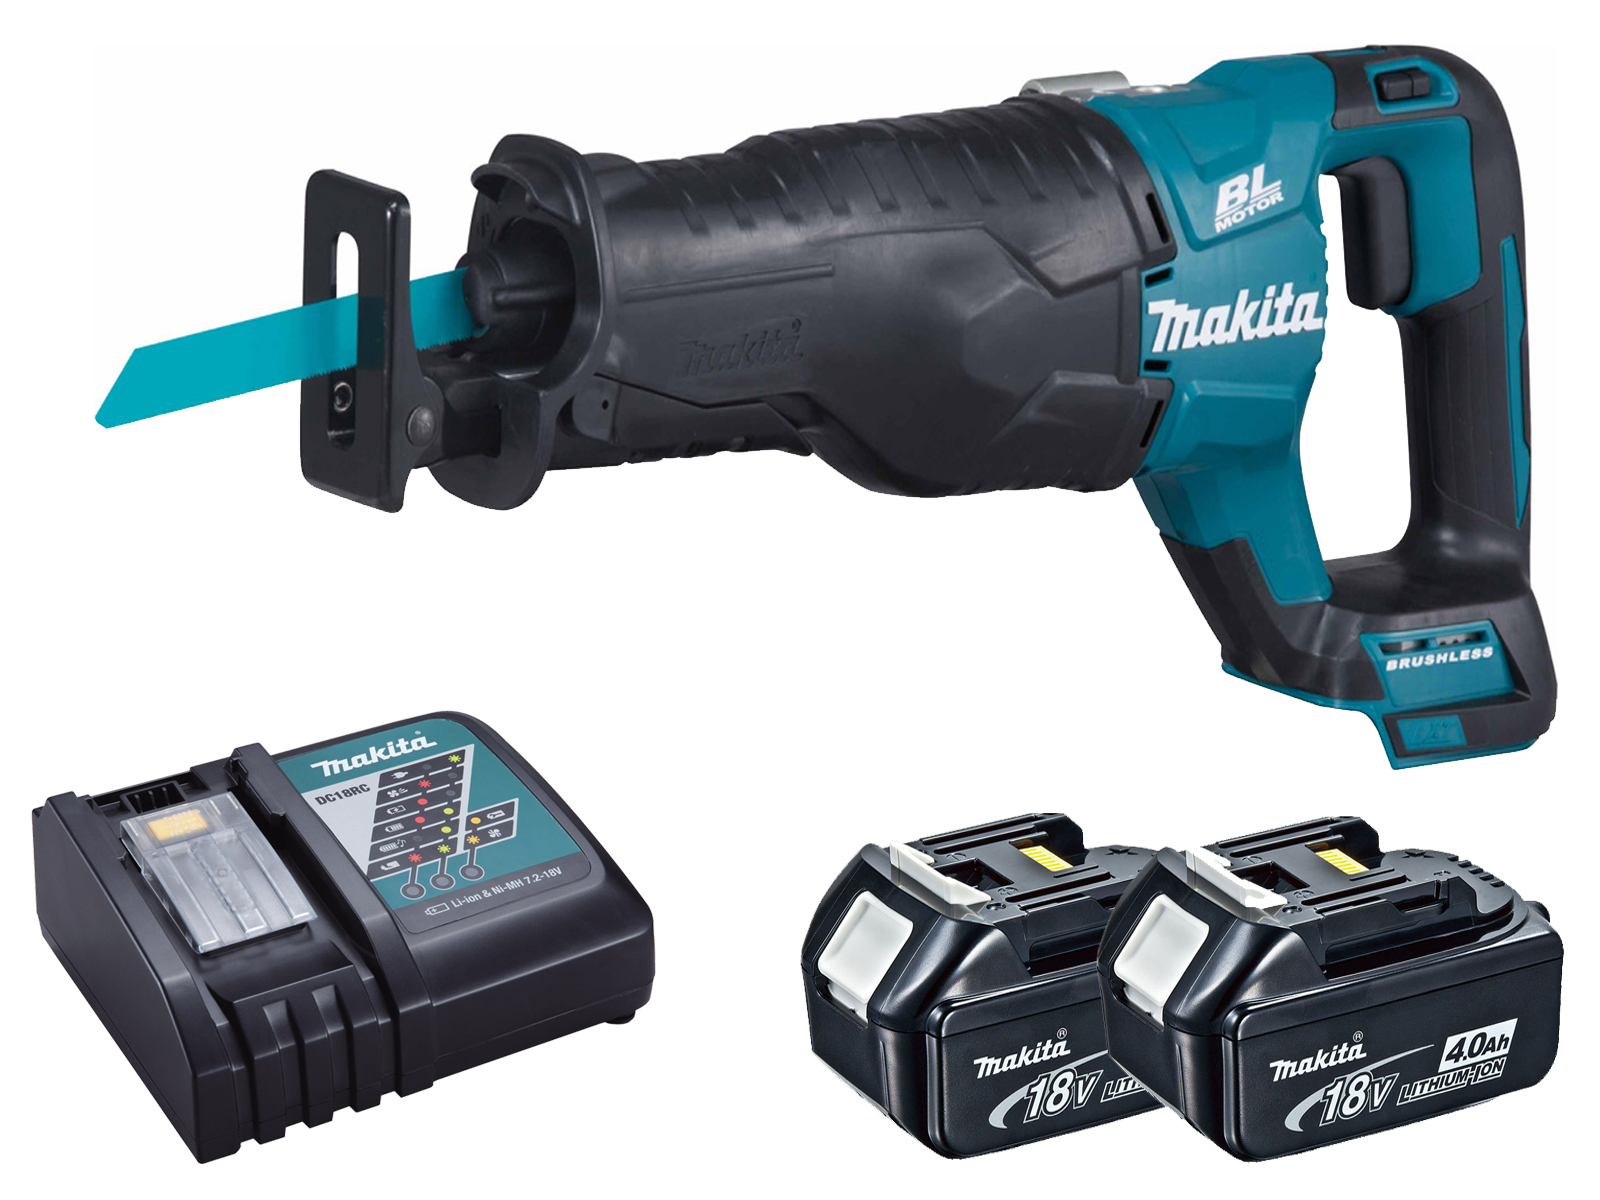 Makita DJR187 18V LXT Brushless Reciprocating Saw - 4.0ah Pack